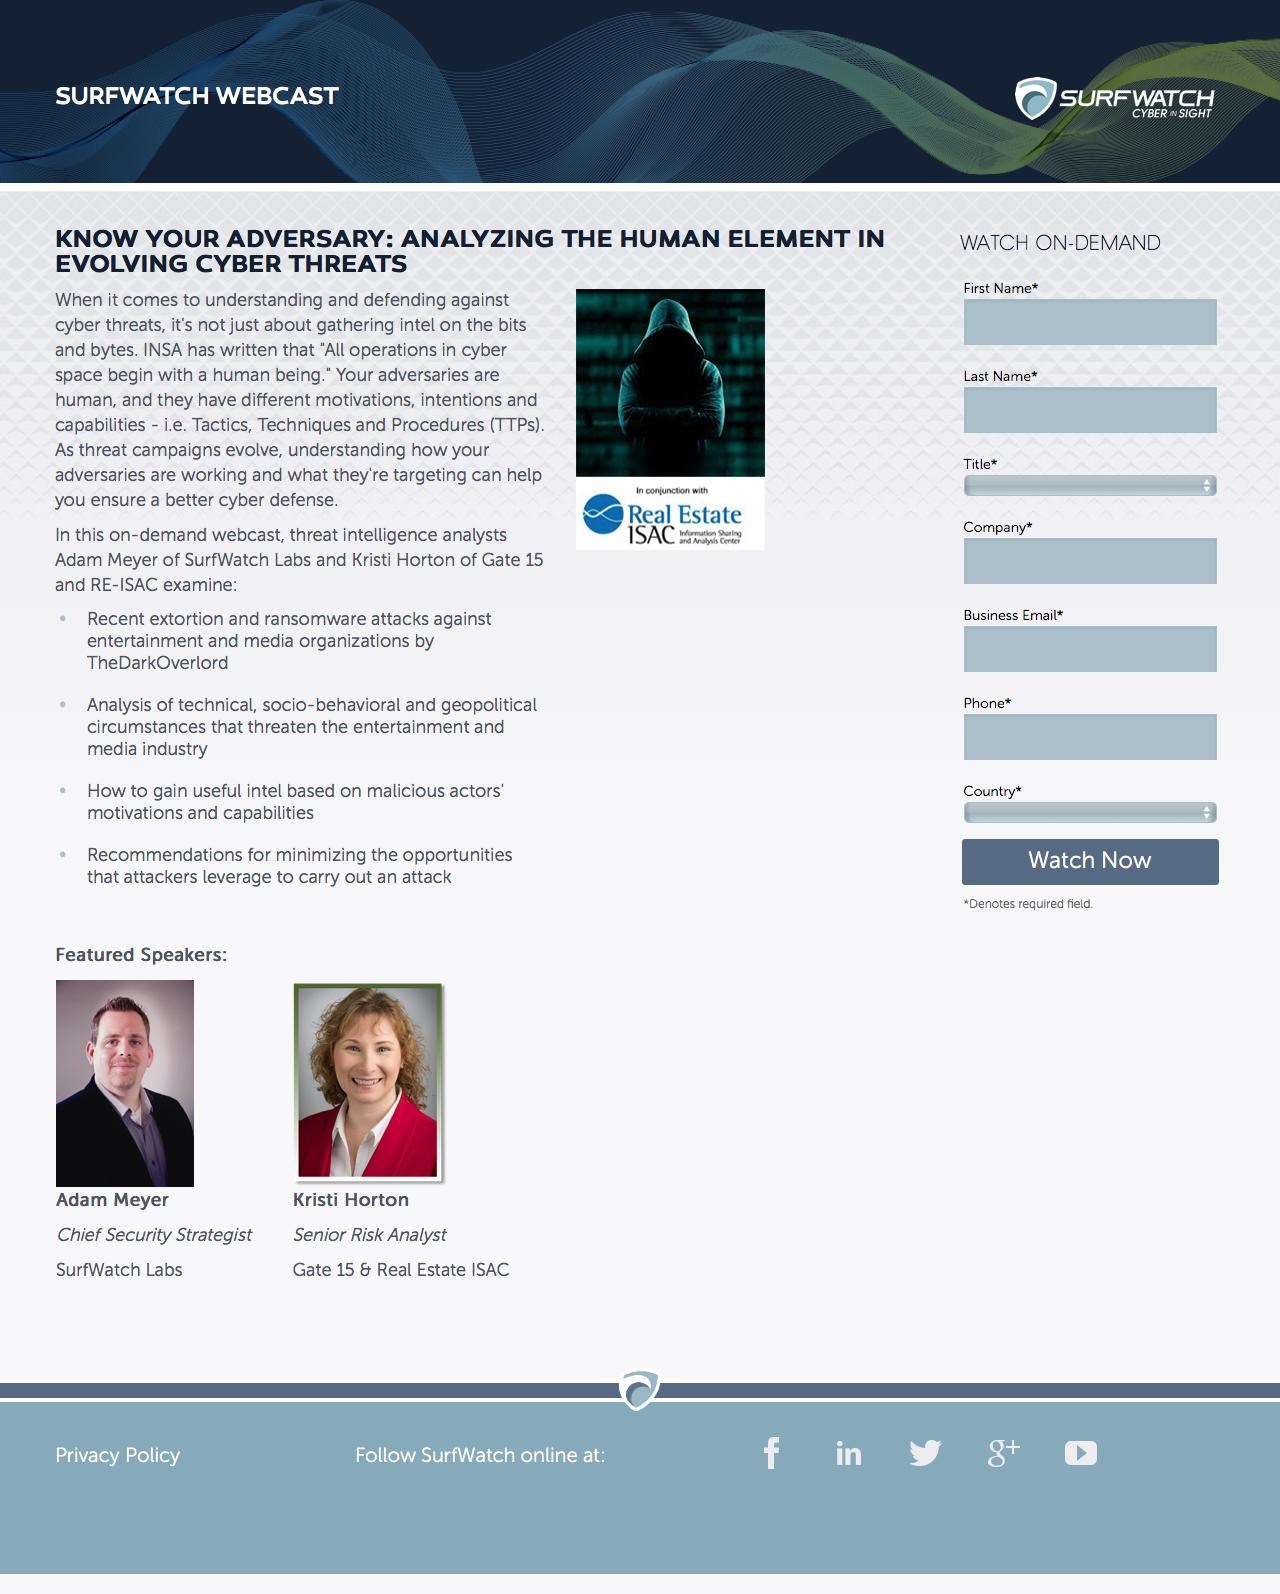 Screenshot of surfwatchlabs.com - Know Your Adversary: Analyzing the Human Element in Evolving Cyber Threats - captured Sept. 7, 2017